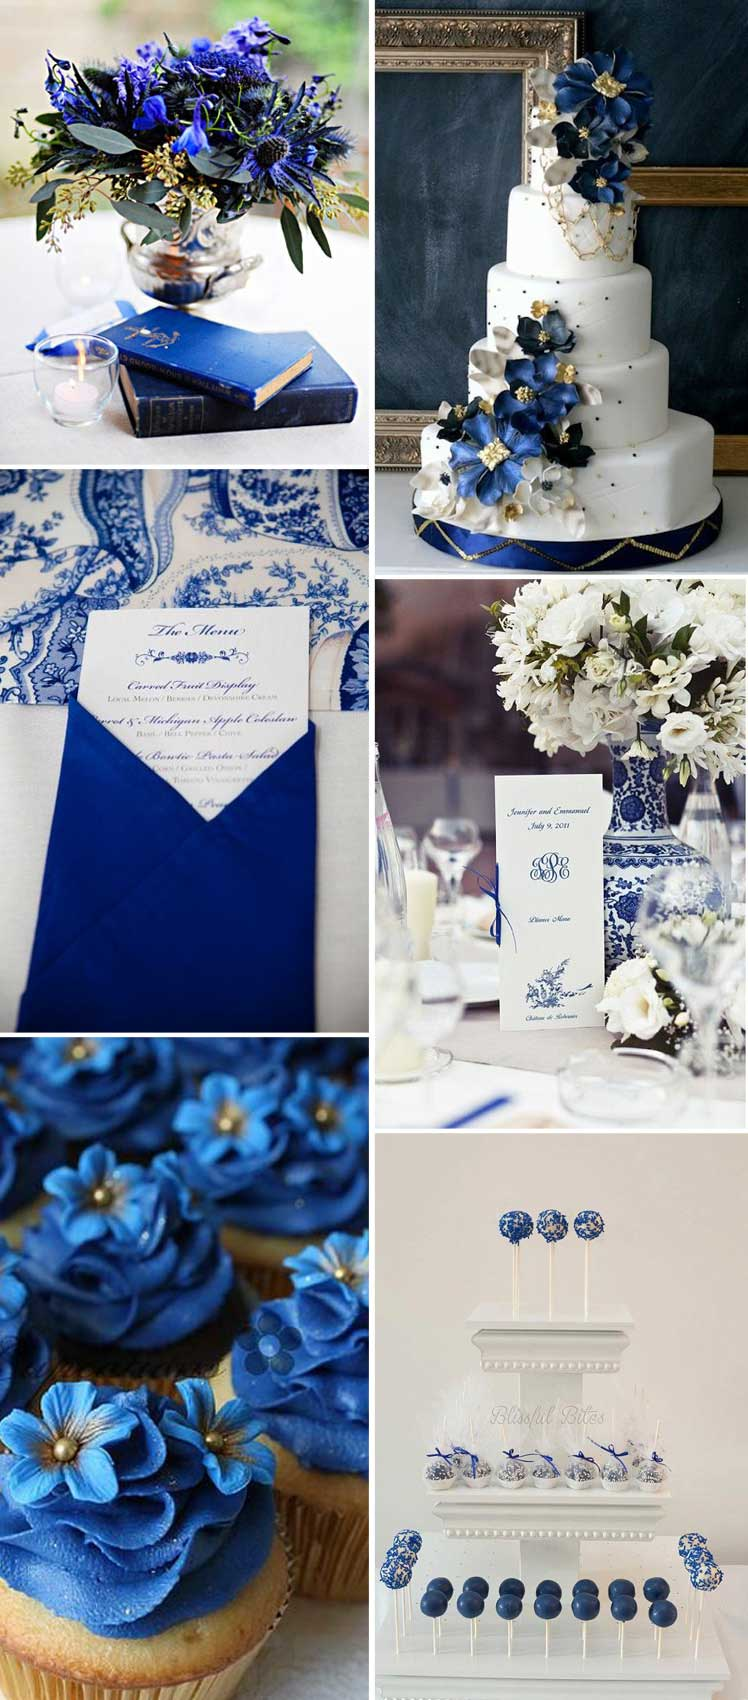 Sapphire wedding reception details